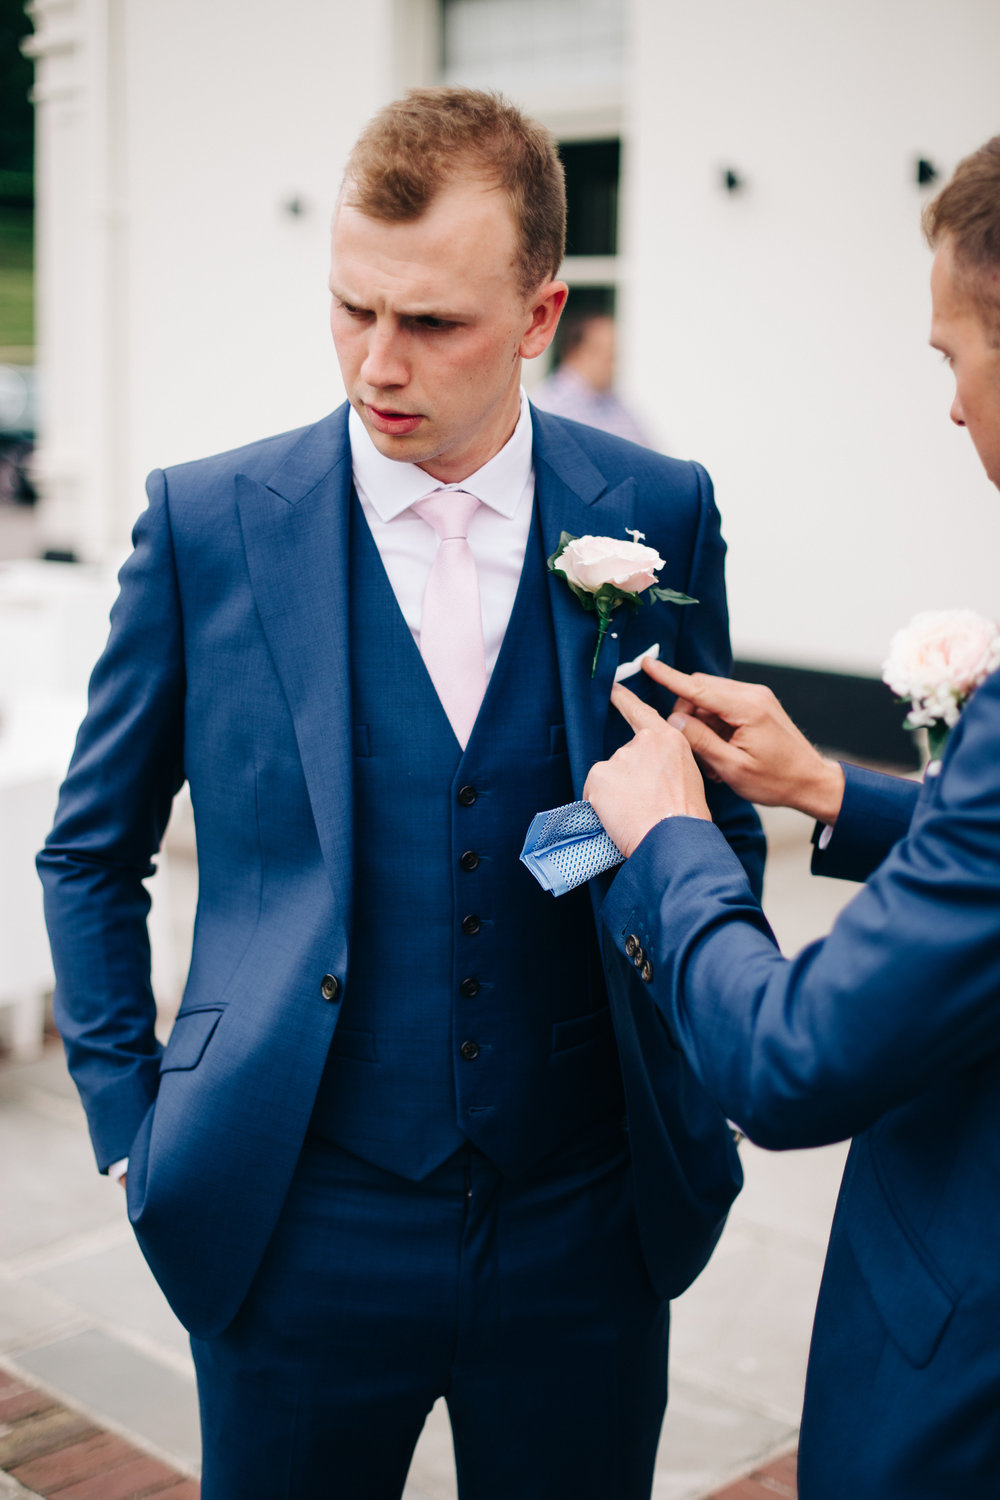 Best Man Buttonhole.jpg